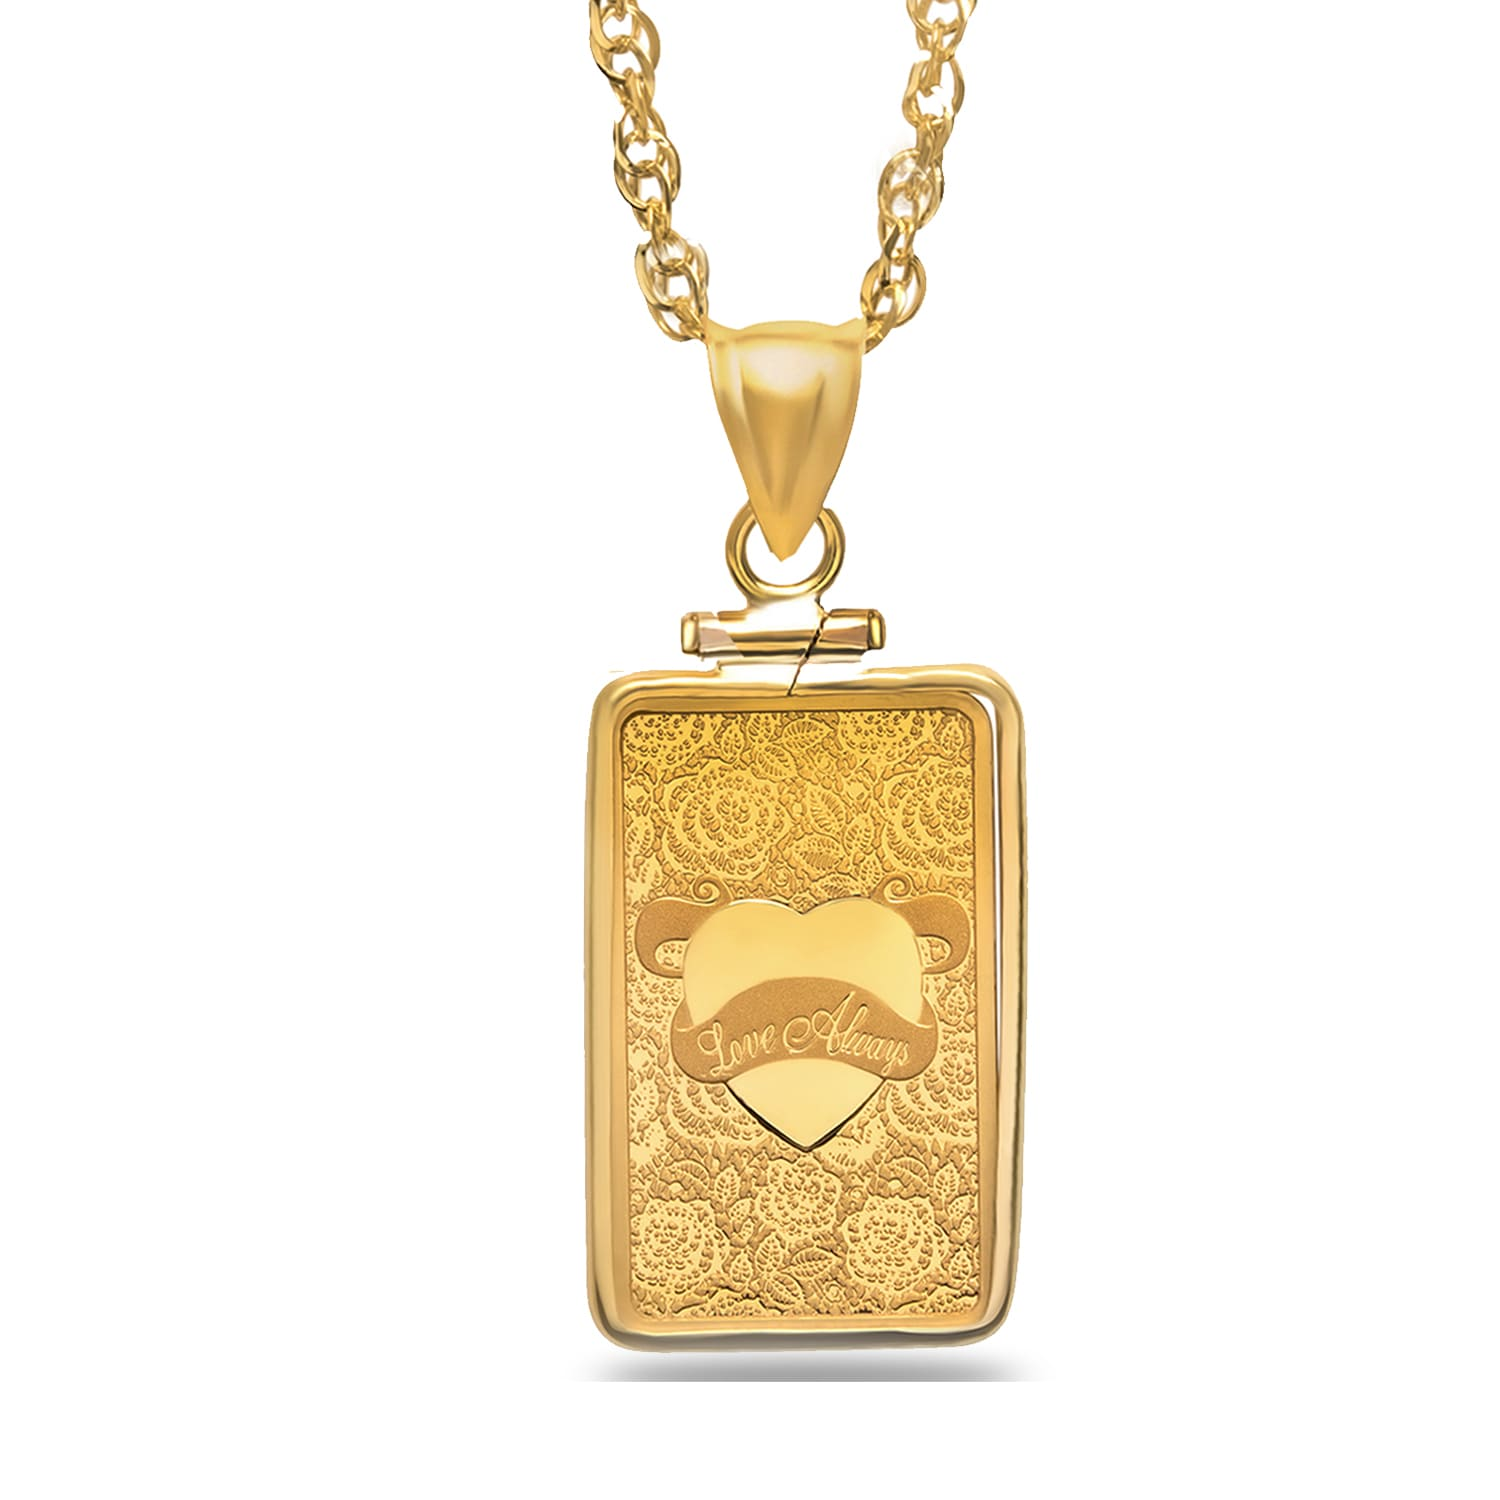 5 gram Gold Pendant - PAMP Suisse Love Always (w/Chain)